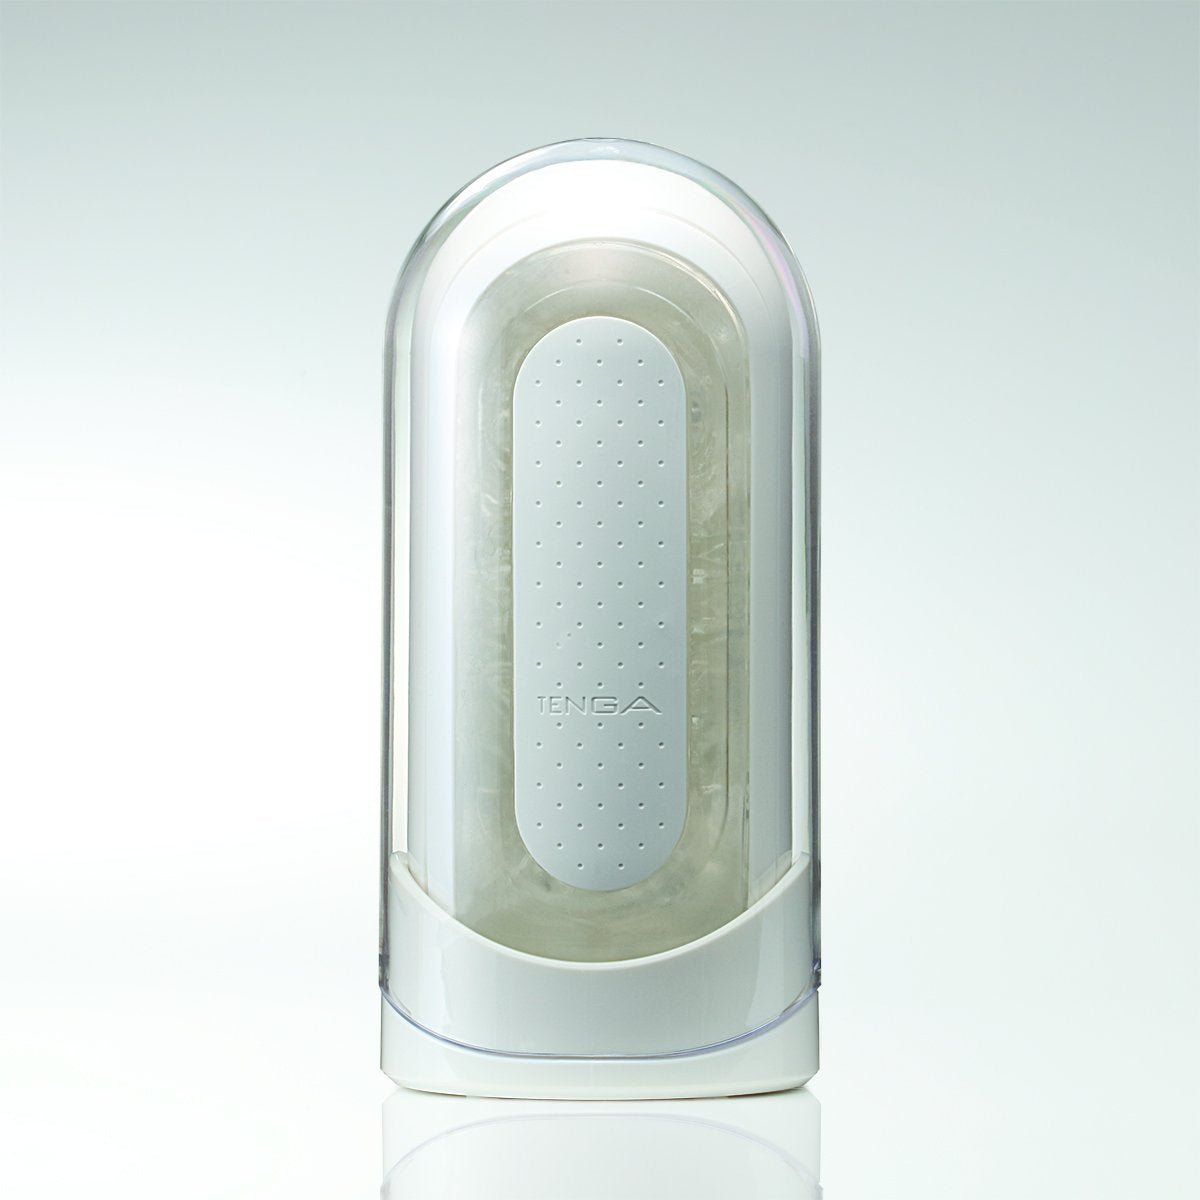 Gray Tenga Flip Zero Vibrating - White